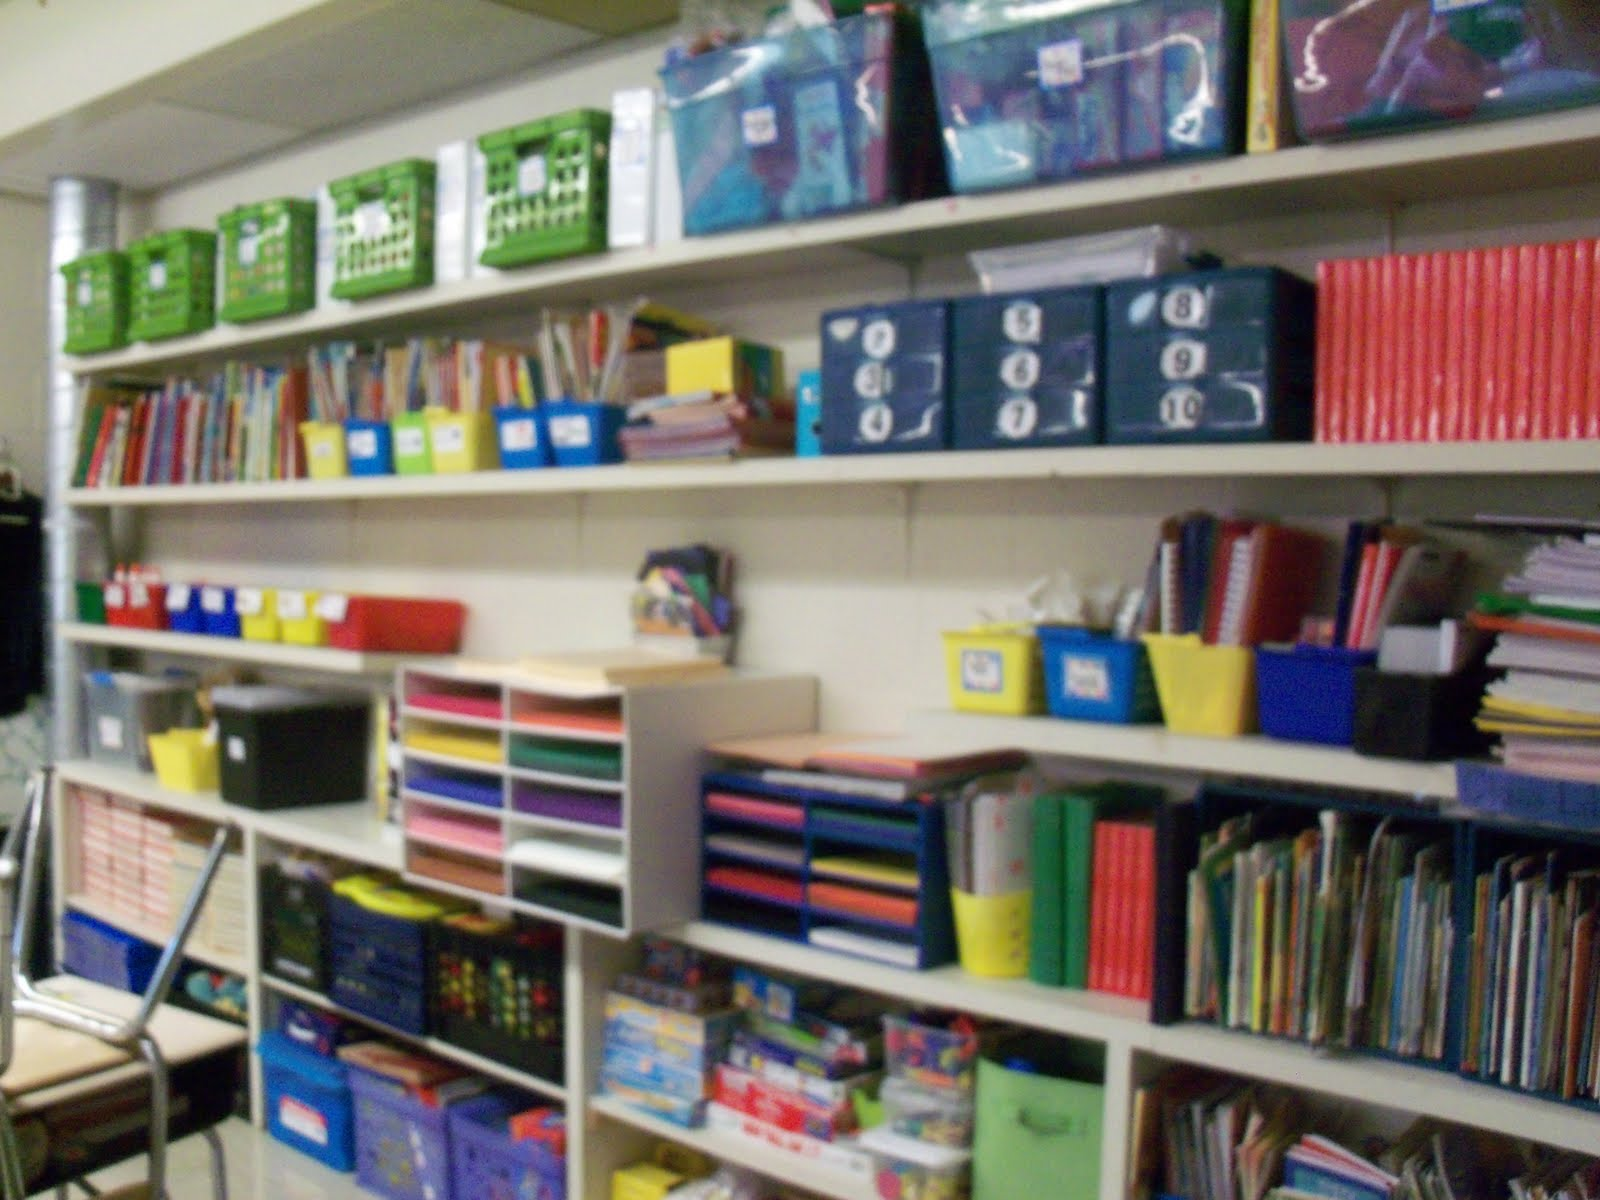 Second grade sidekicks earthquake and my classroom pics this is my wall of shelves quite challenging to look at the open shelves all day and we cant cover them with fabric or curtains amipublicfo Image collections